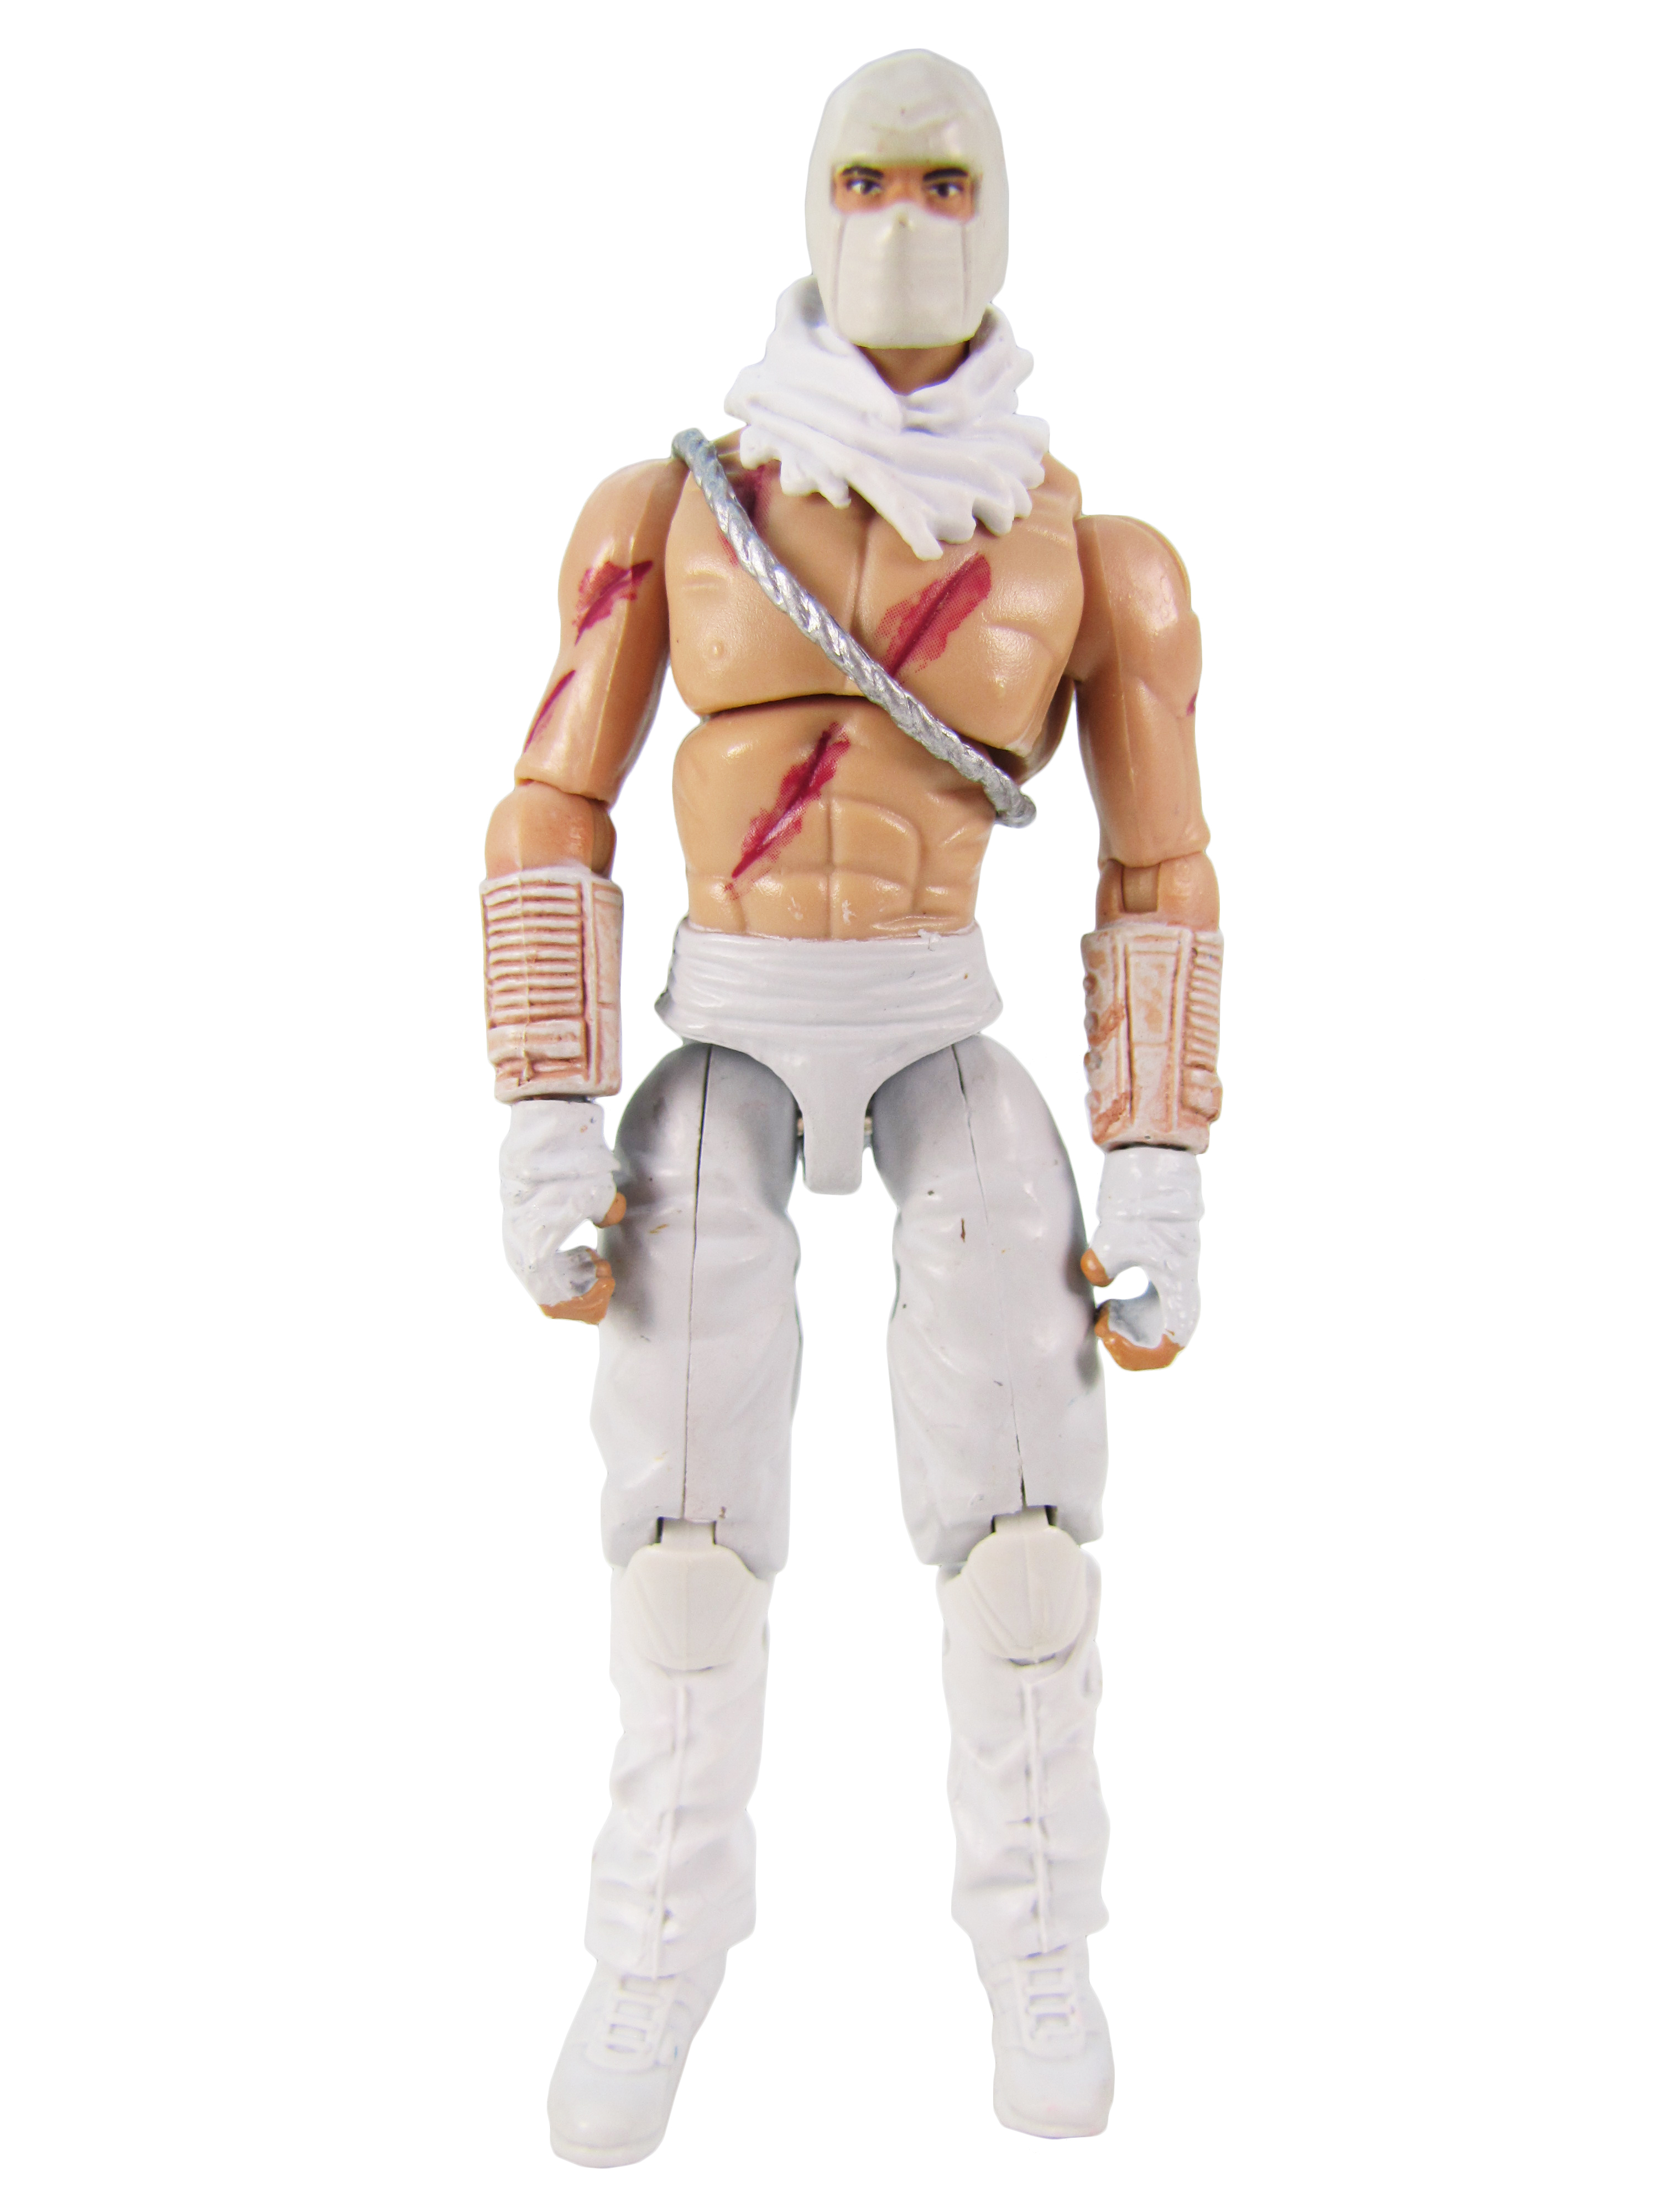 2009 GIJoe The Rise of Cobra ARCTIC ASSAULT STORM SHADOW Mint Condition